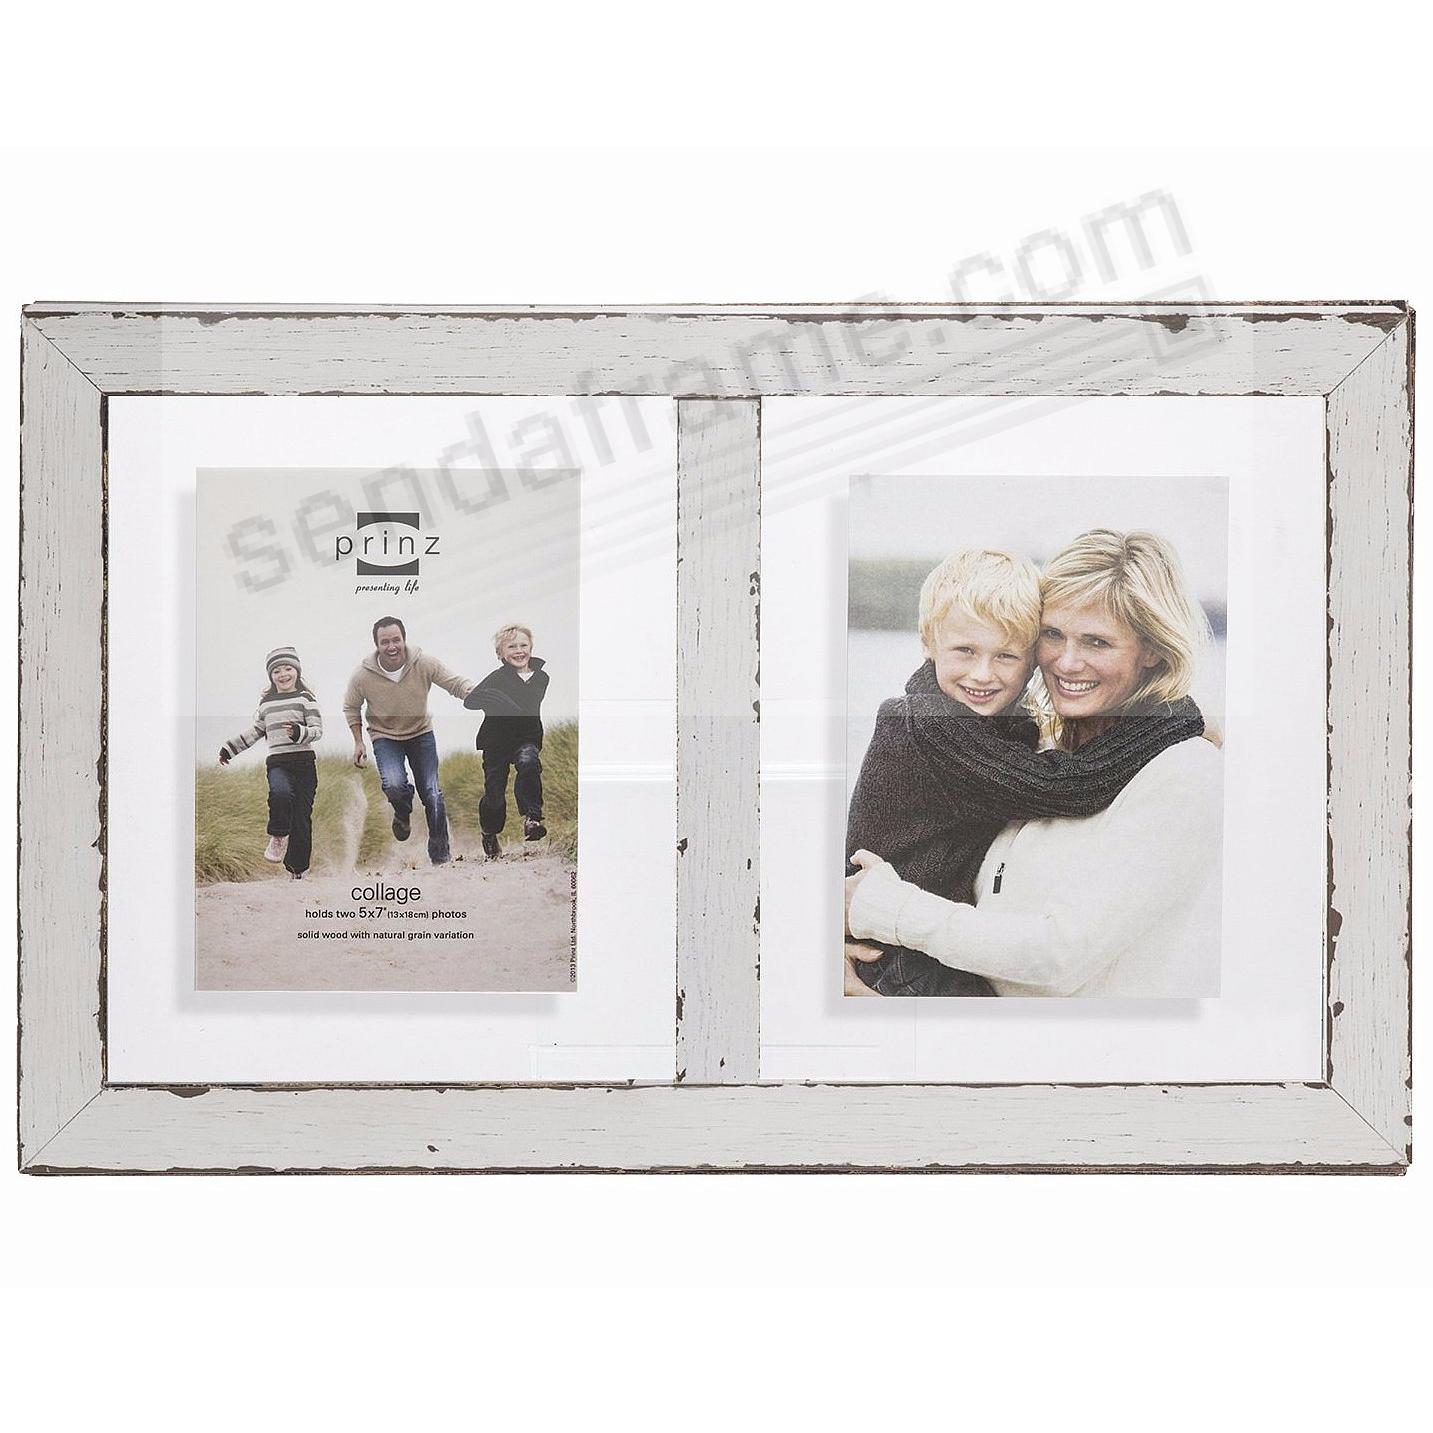 bristol distressed white wood float double 5x7 frame by prinz usa